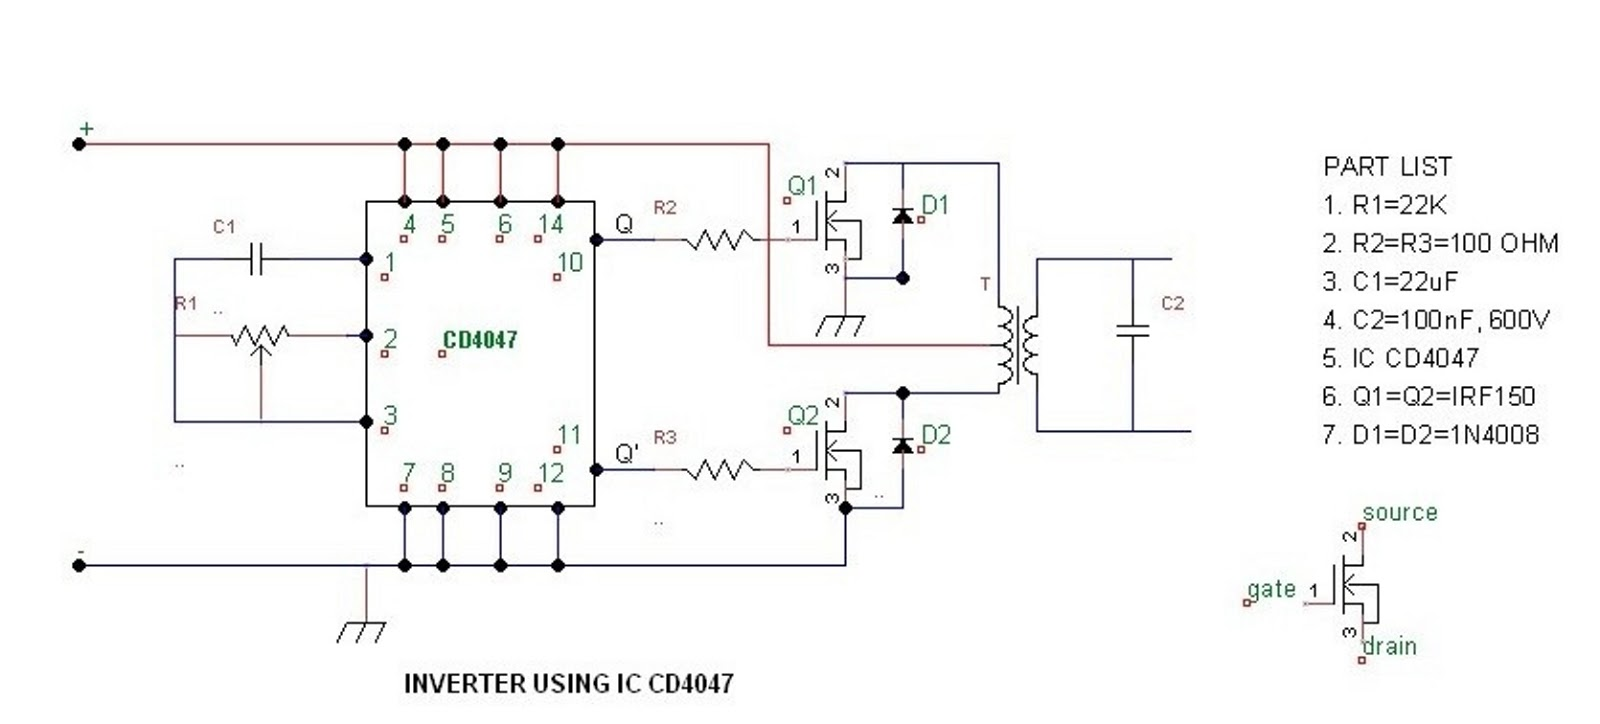 Electrical My Hobby 2014 Cmos 4017 Sequential Timer